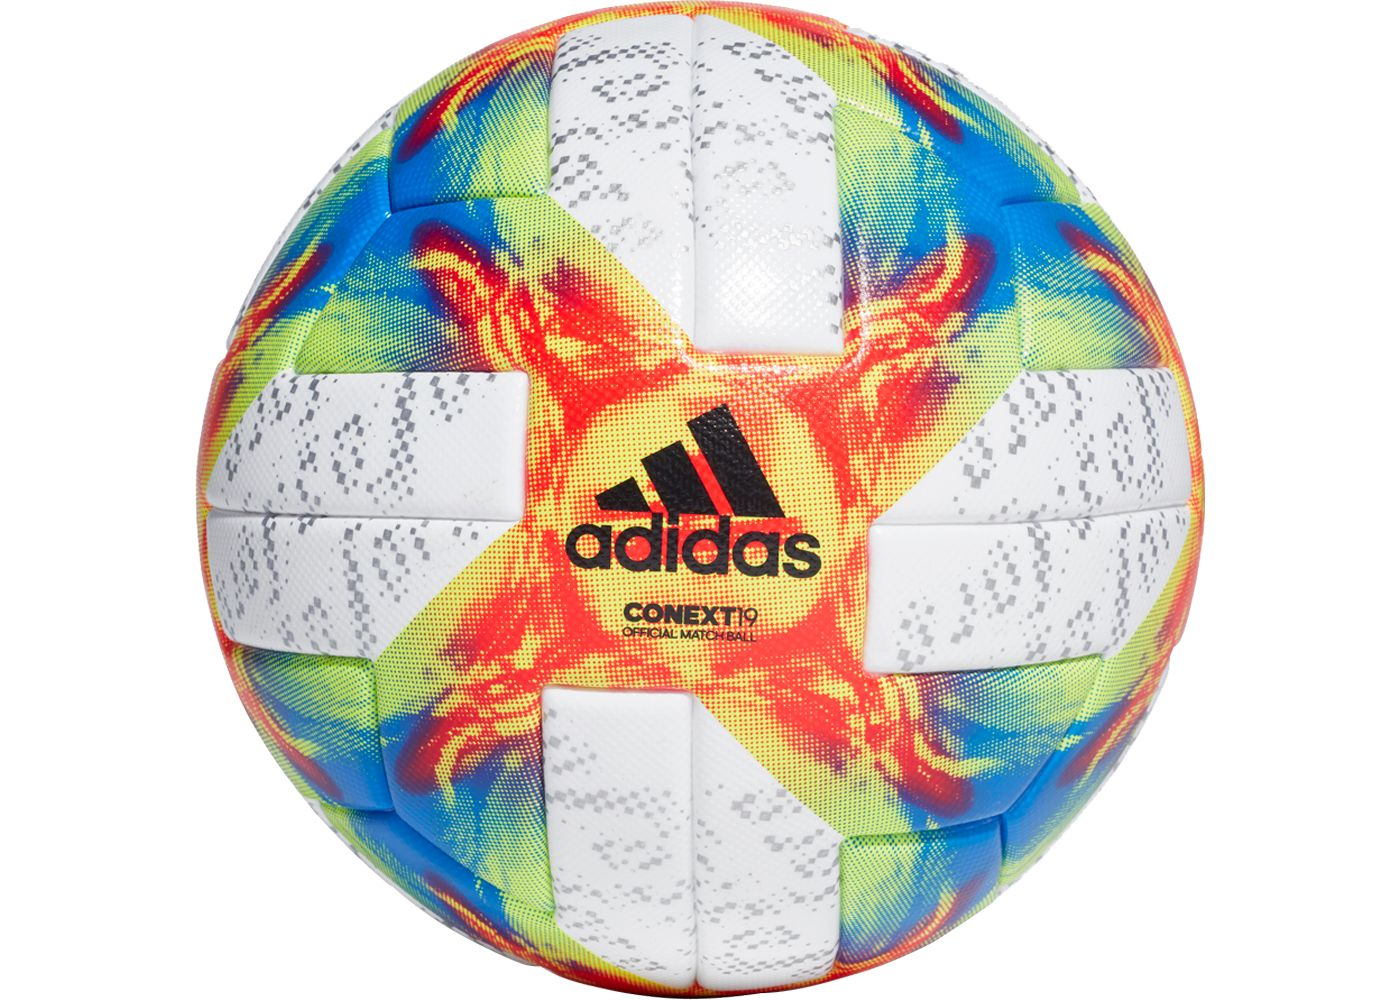 adidas 2019 FIFA Women's World Cup Conext19 Official Match Ball